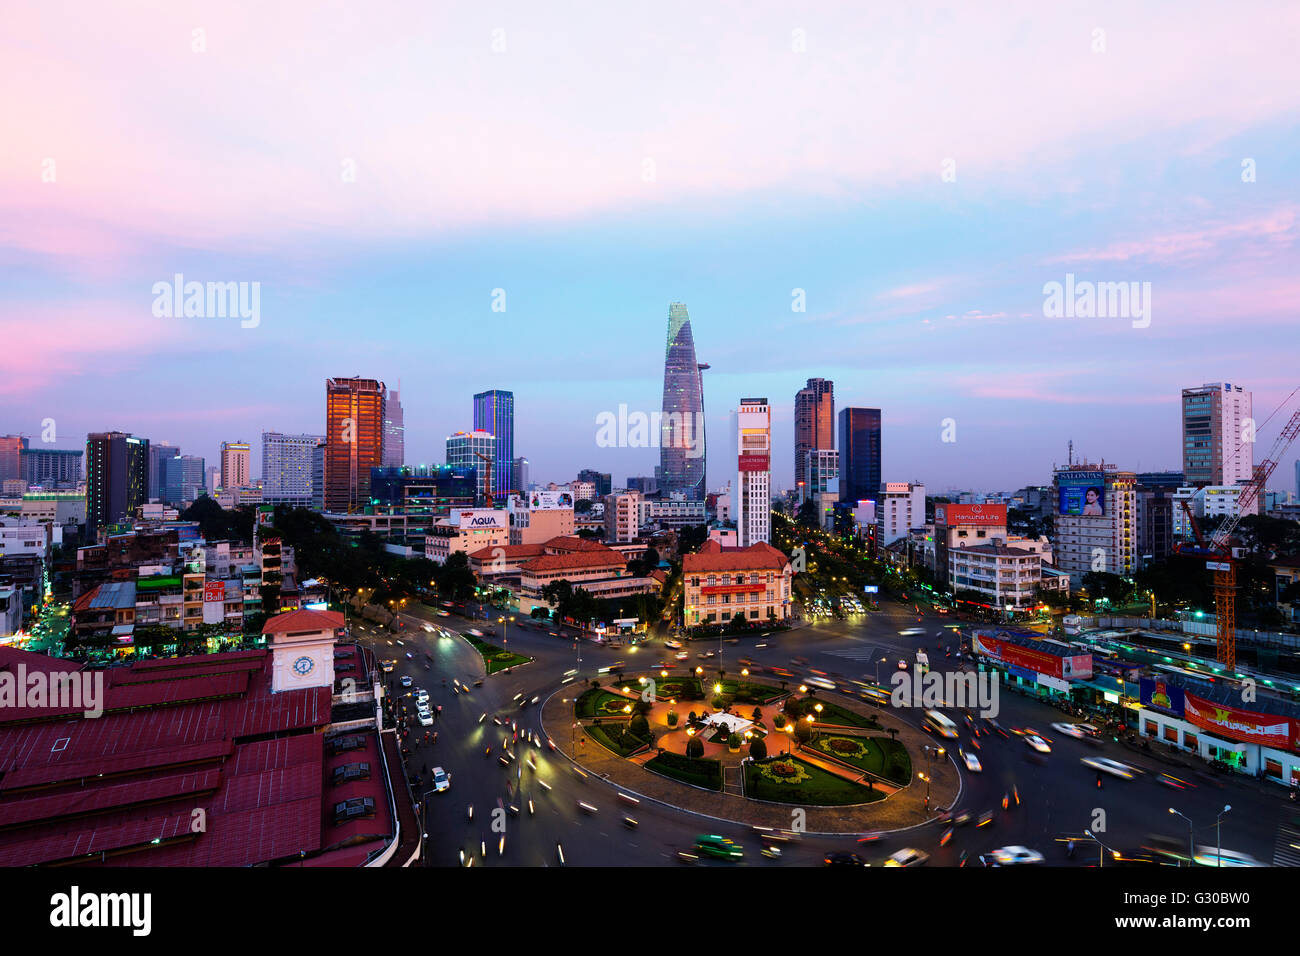 Ben Thanh market area and Bitexco Financial Tower, Ho Chi Minh City (Saigon), Vietnam, Indochina, Southeast Asia, Stock Photo